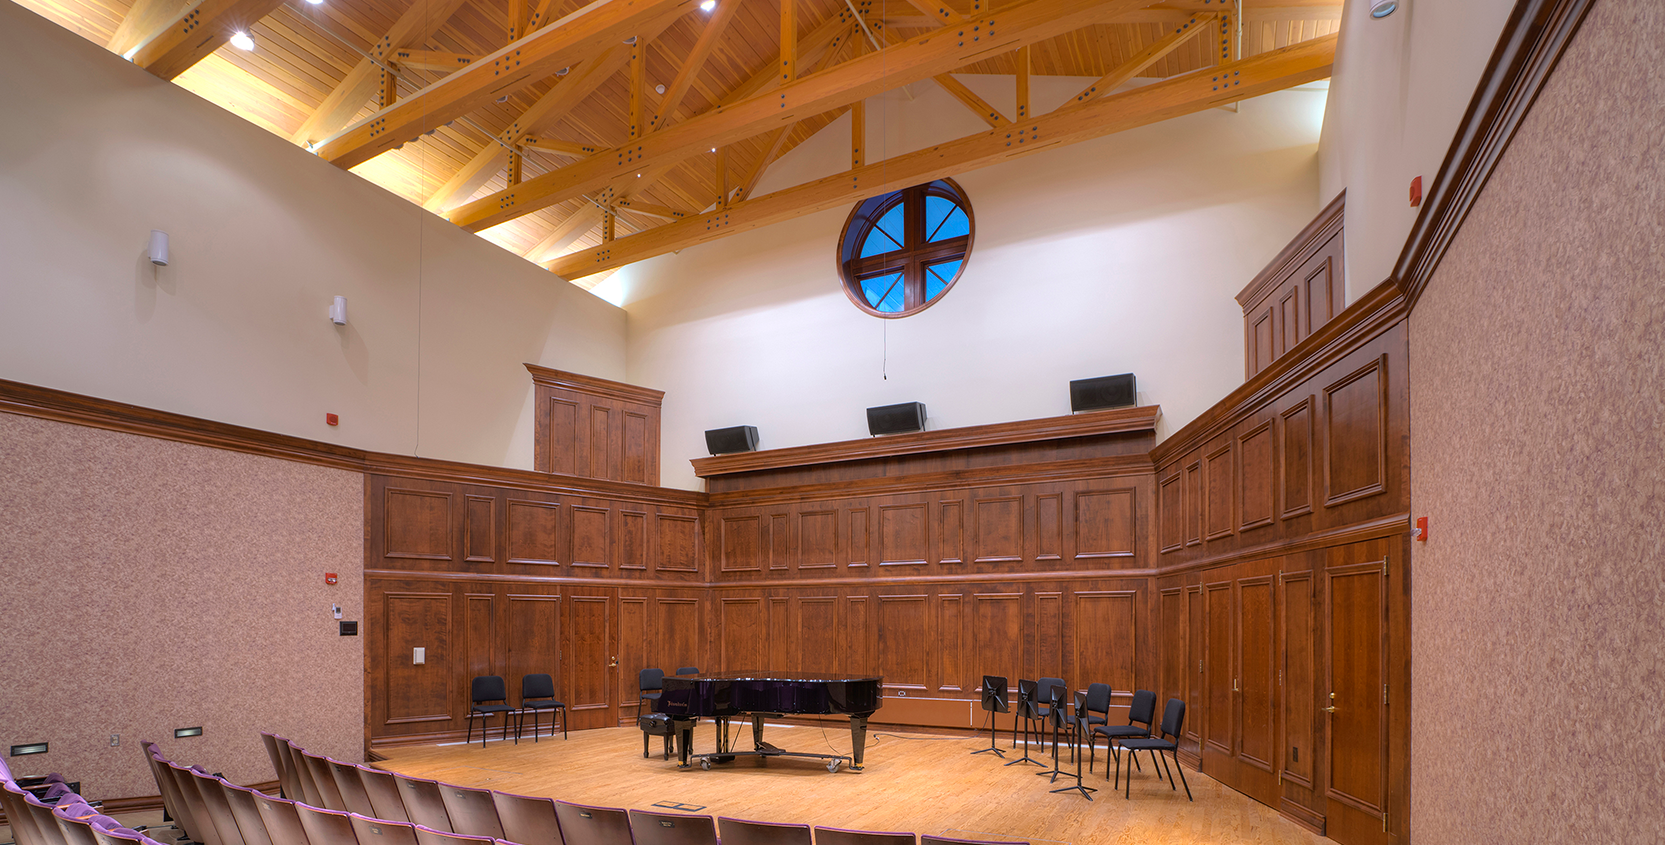 Hillsdale-College-John-and-Dede-Howard-Music-Hall-Renovation-4-1665x845